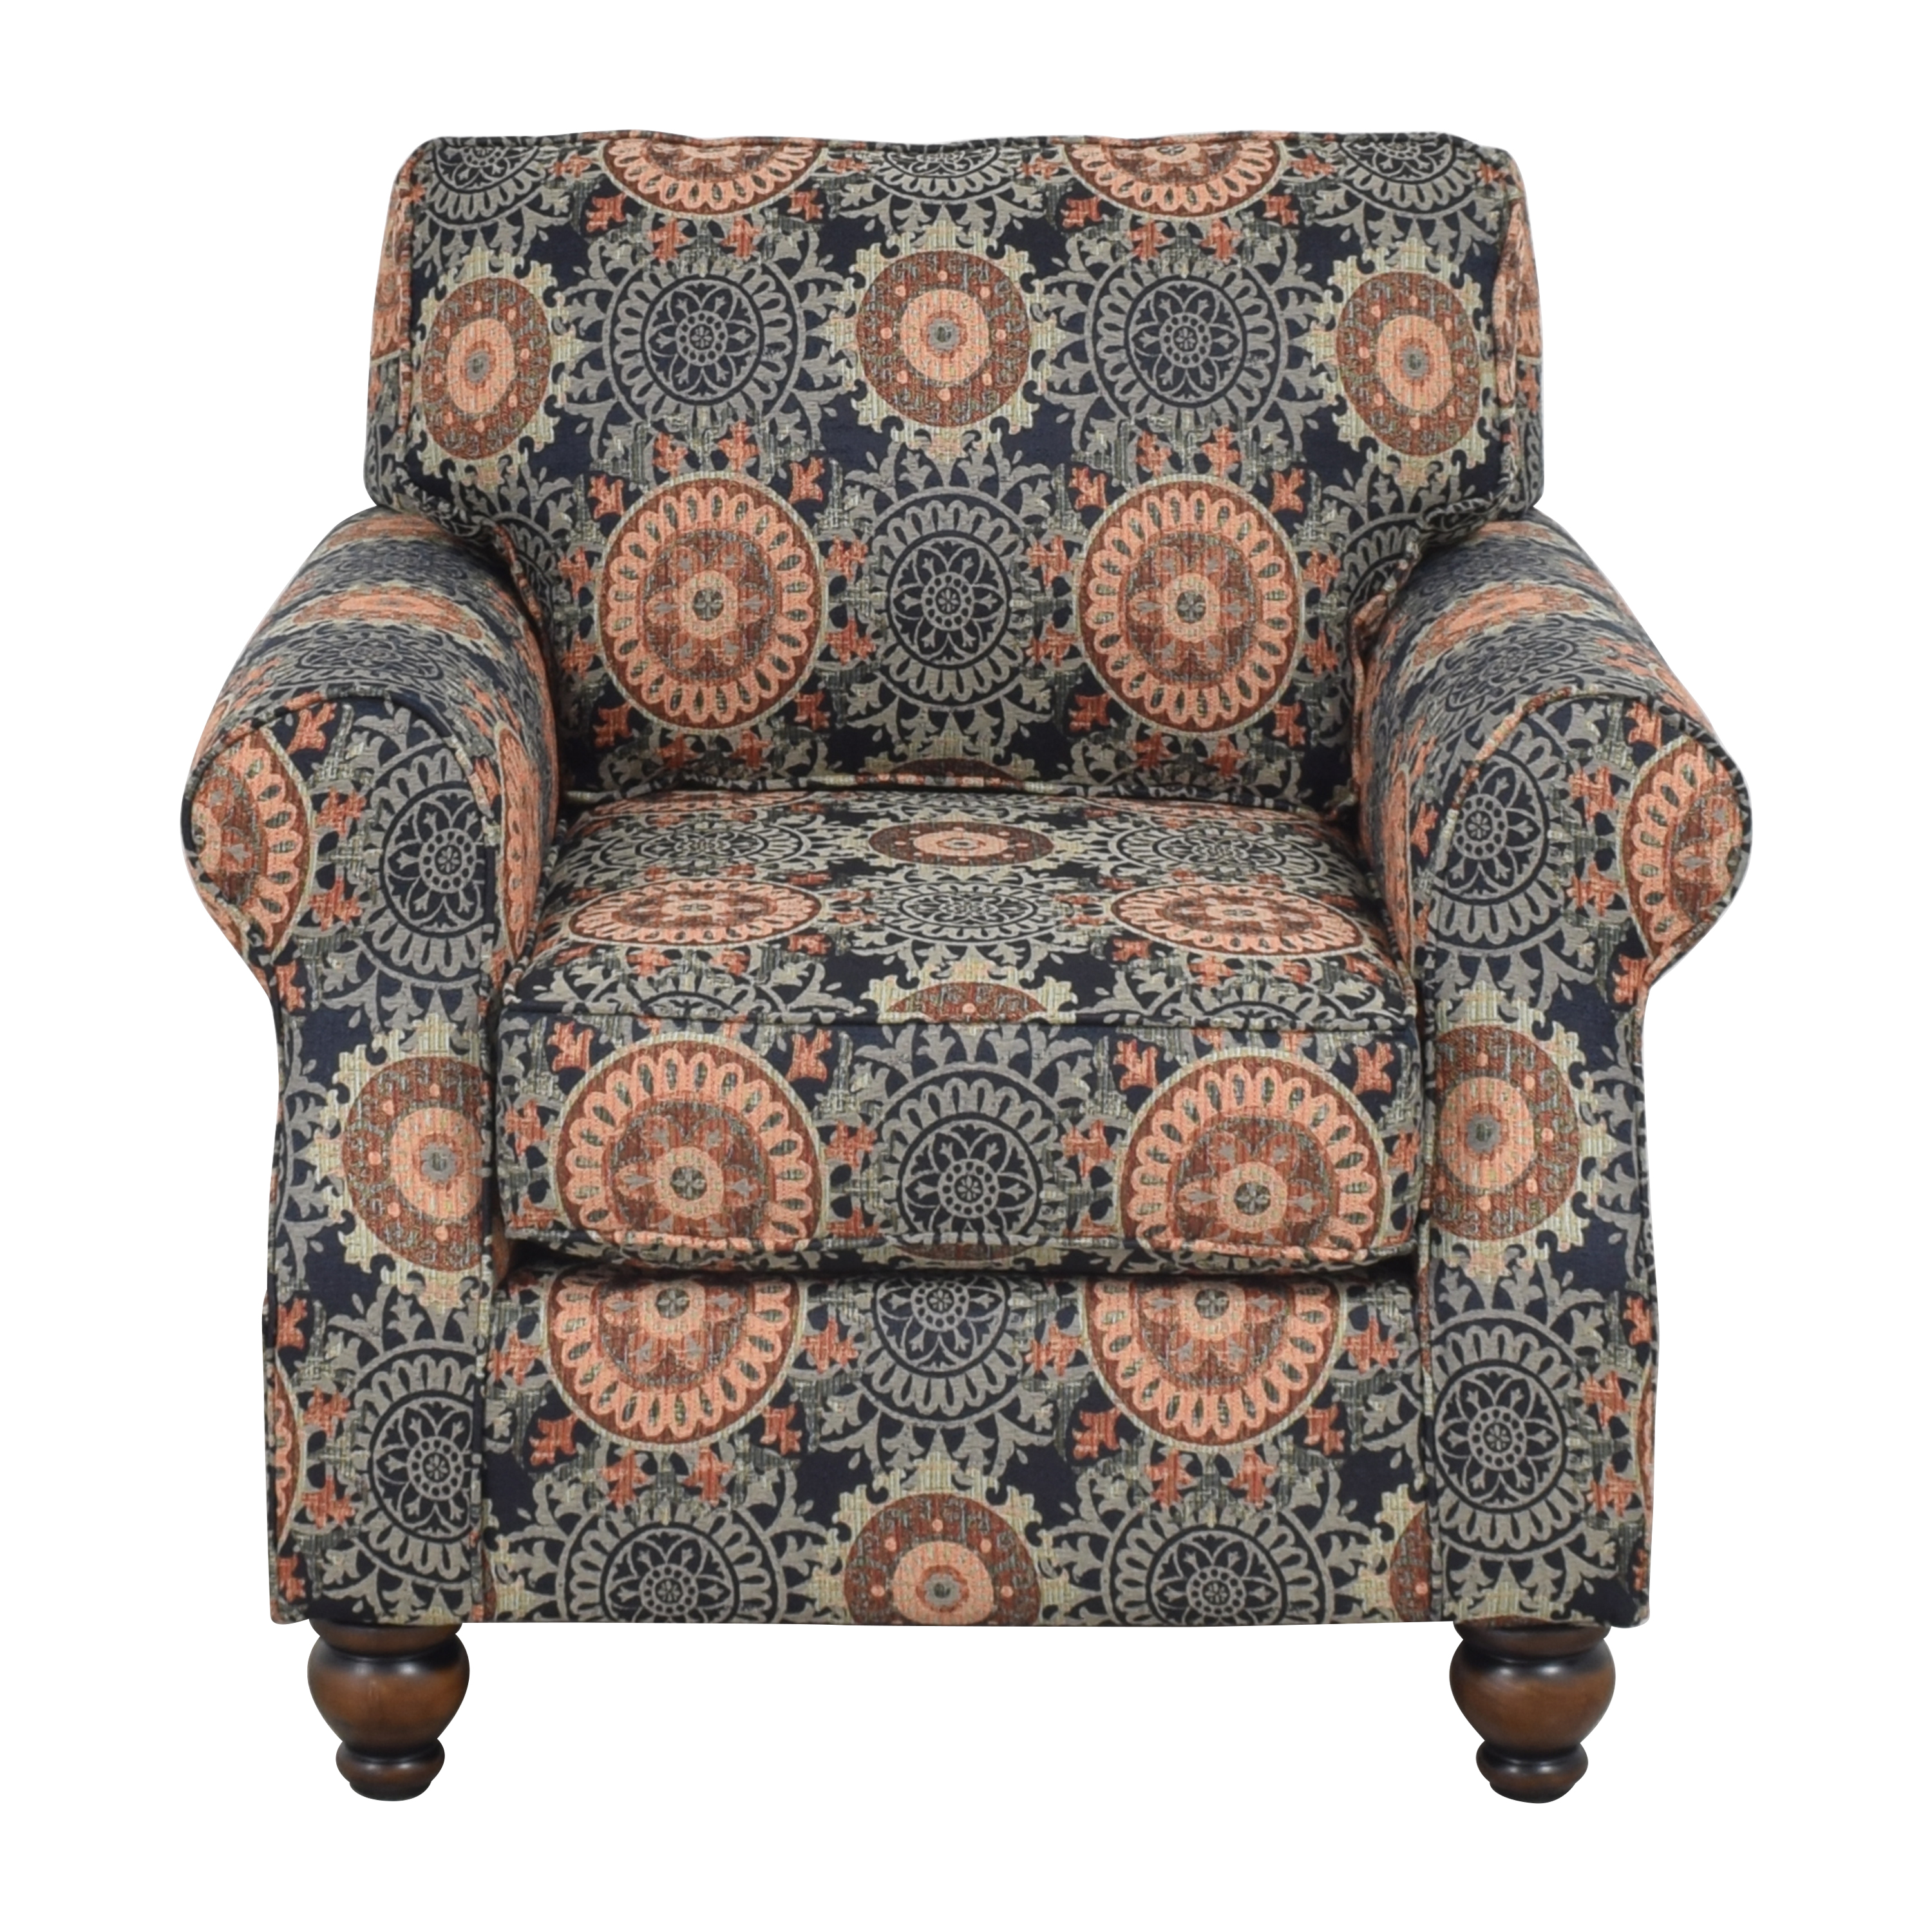 Fusion Furniture Patterned Accent Chair / Chairs